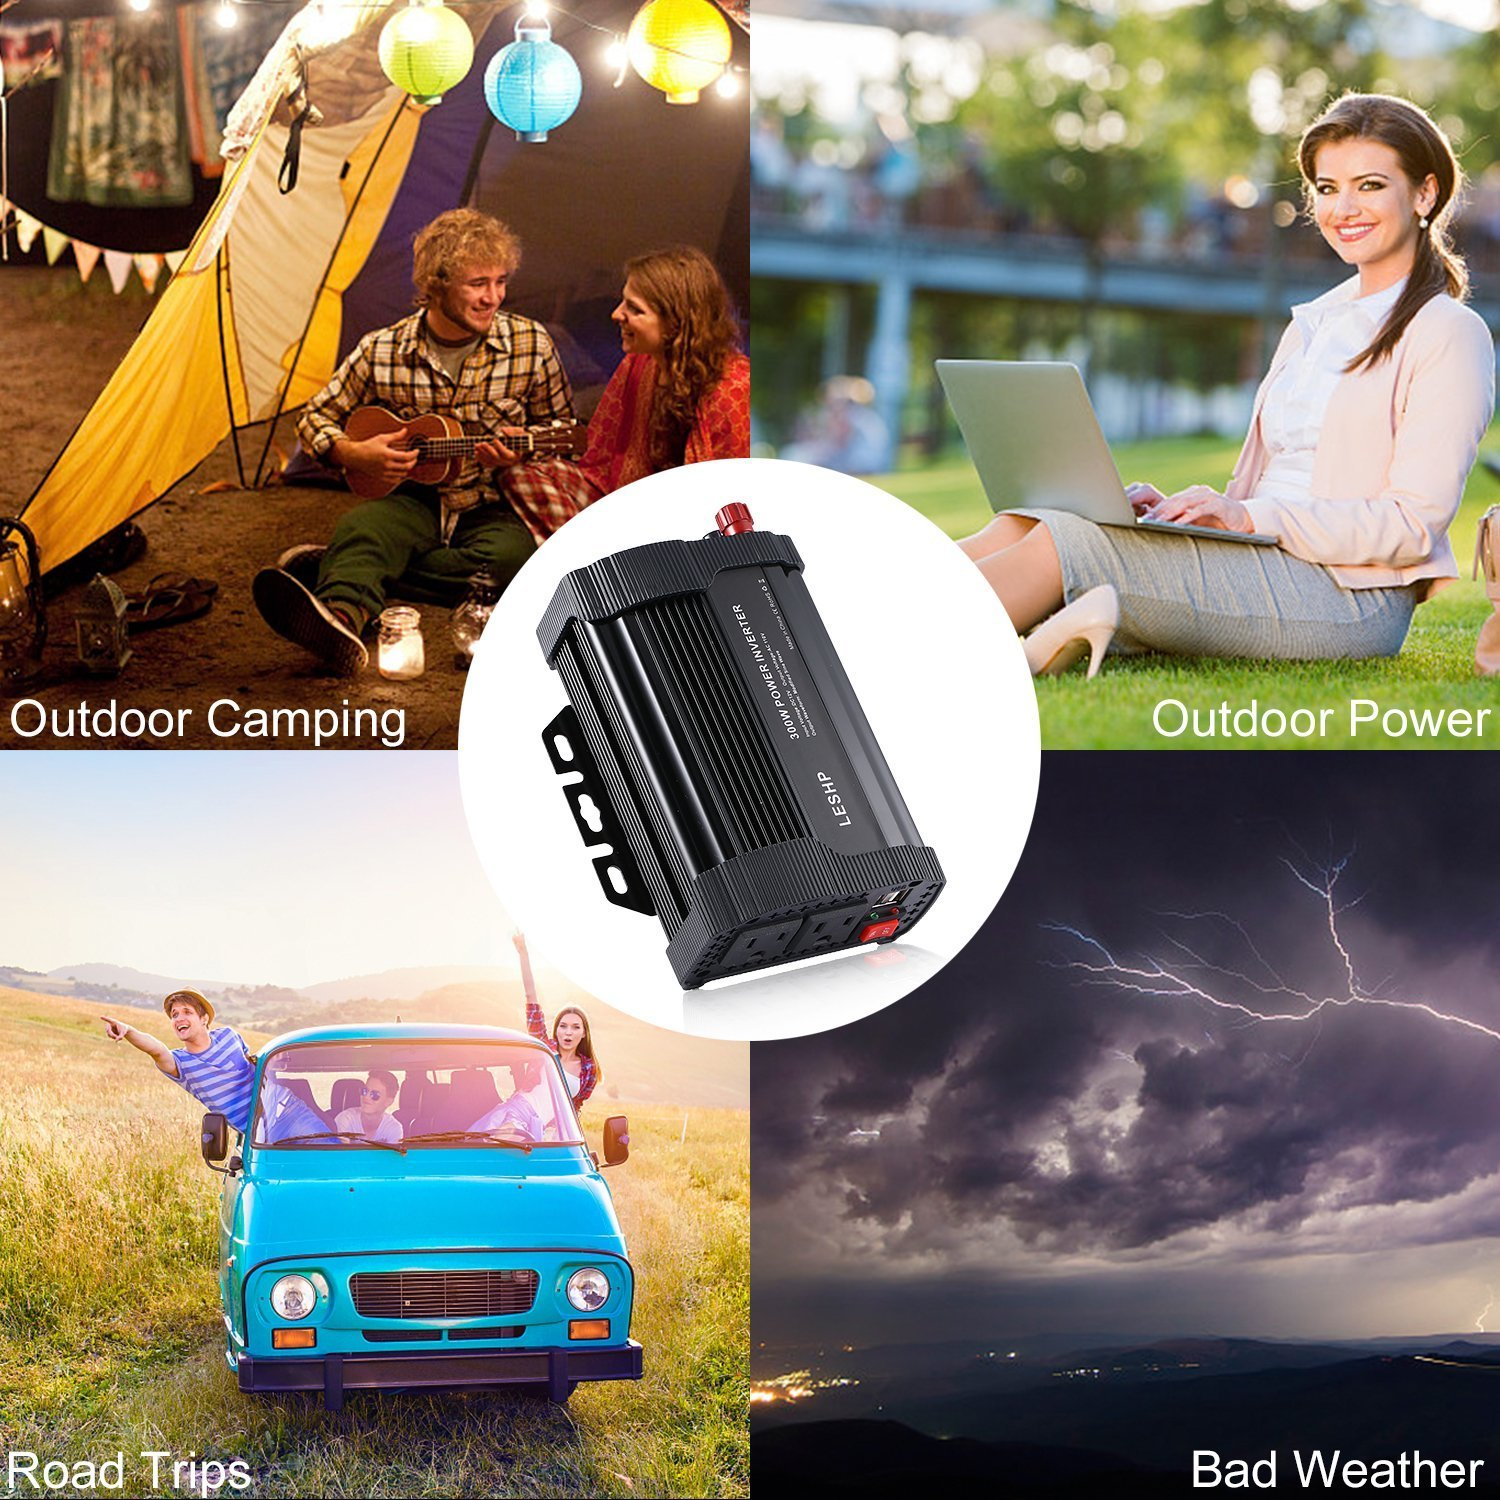 LESHP 400W Power Inverter DC 12V to AC 110V Car Adapter with 4.8A 2 USB Charging Ports by LESHP (Image #8)